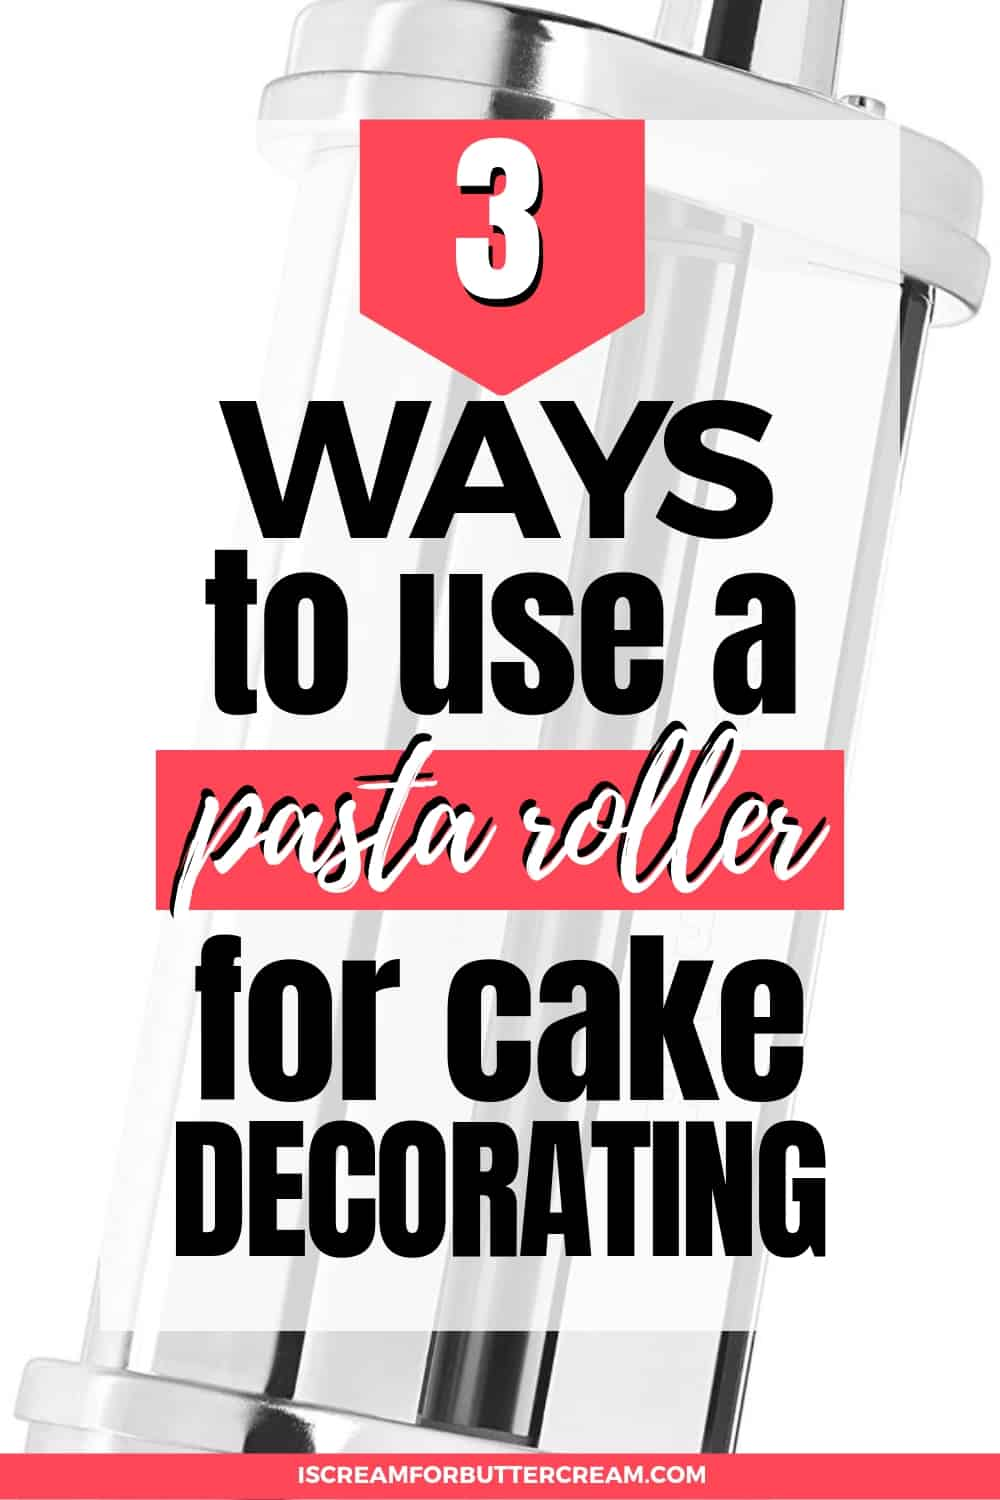 3 Ways to use a pasta roller for cake decorating New Pin graphic 3